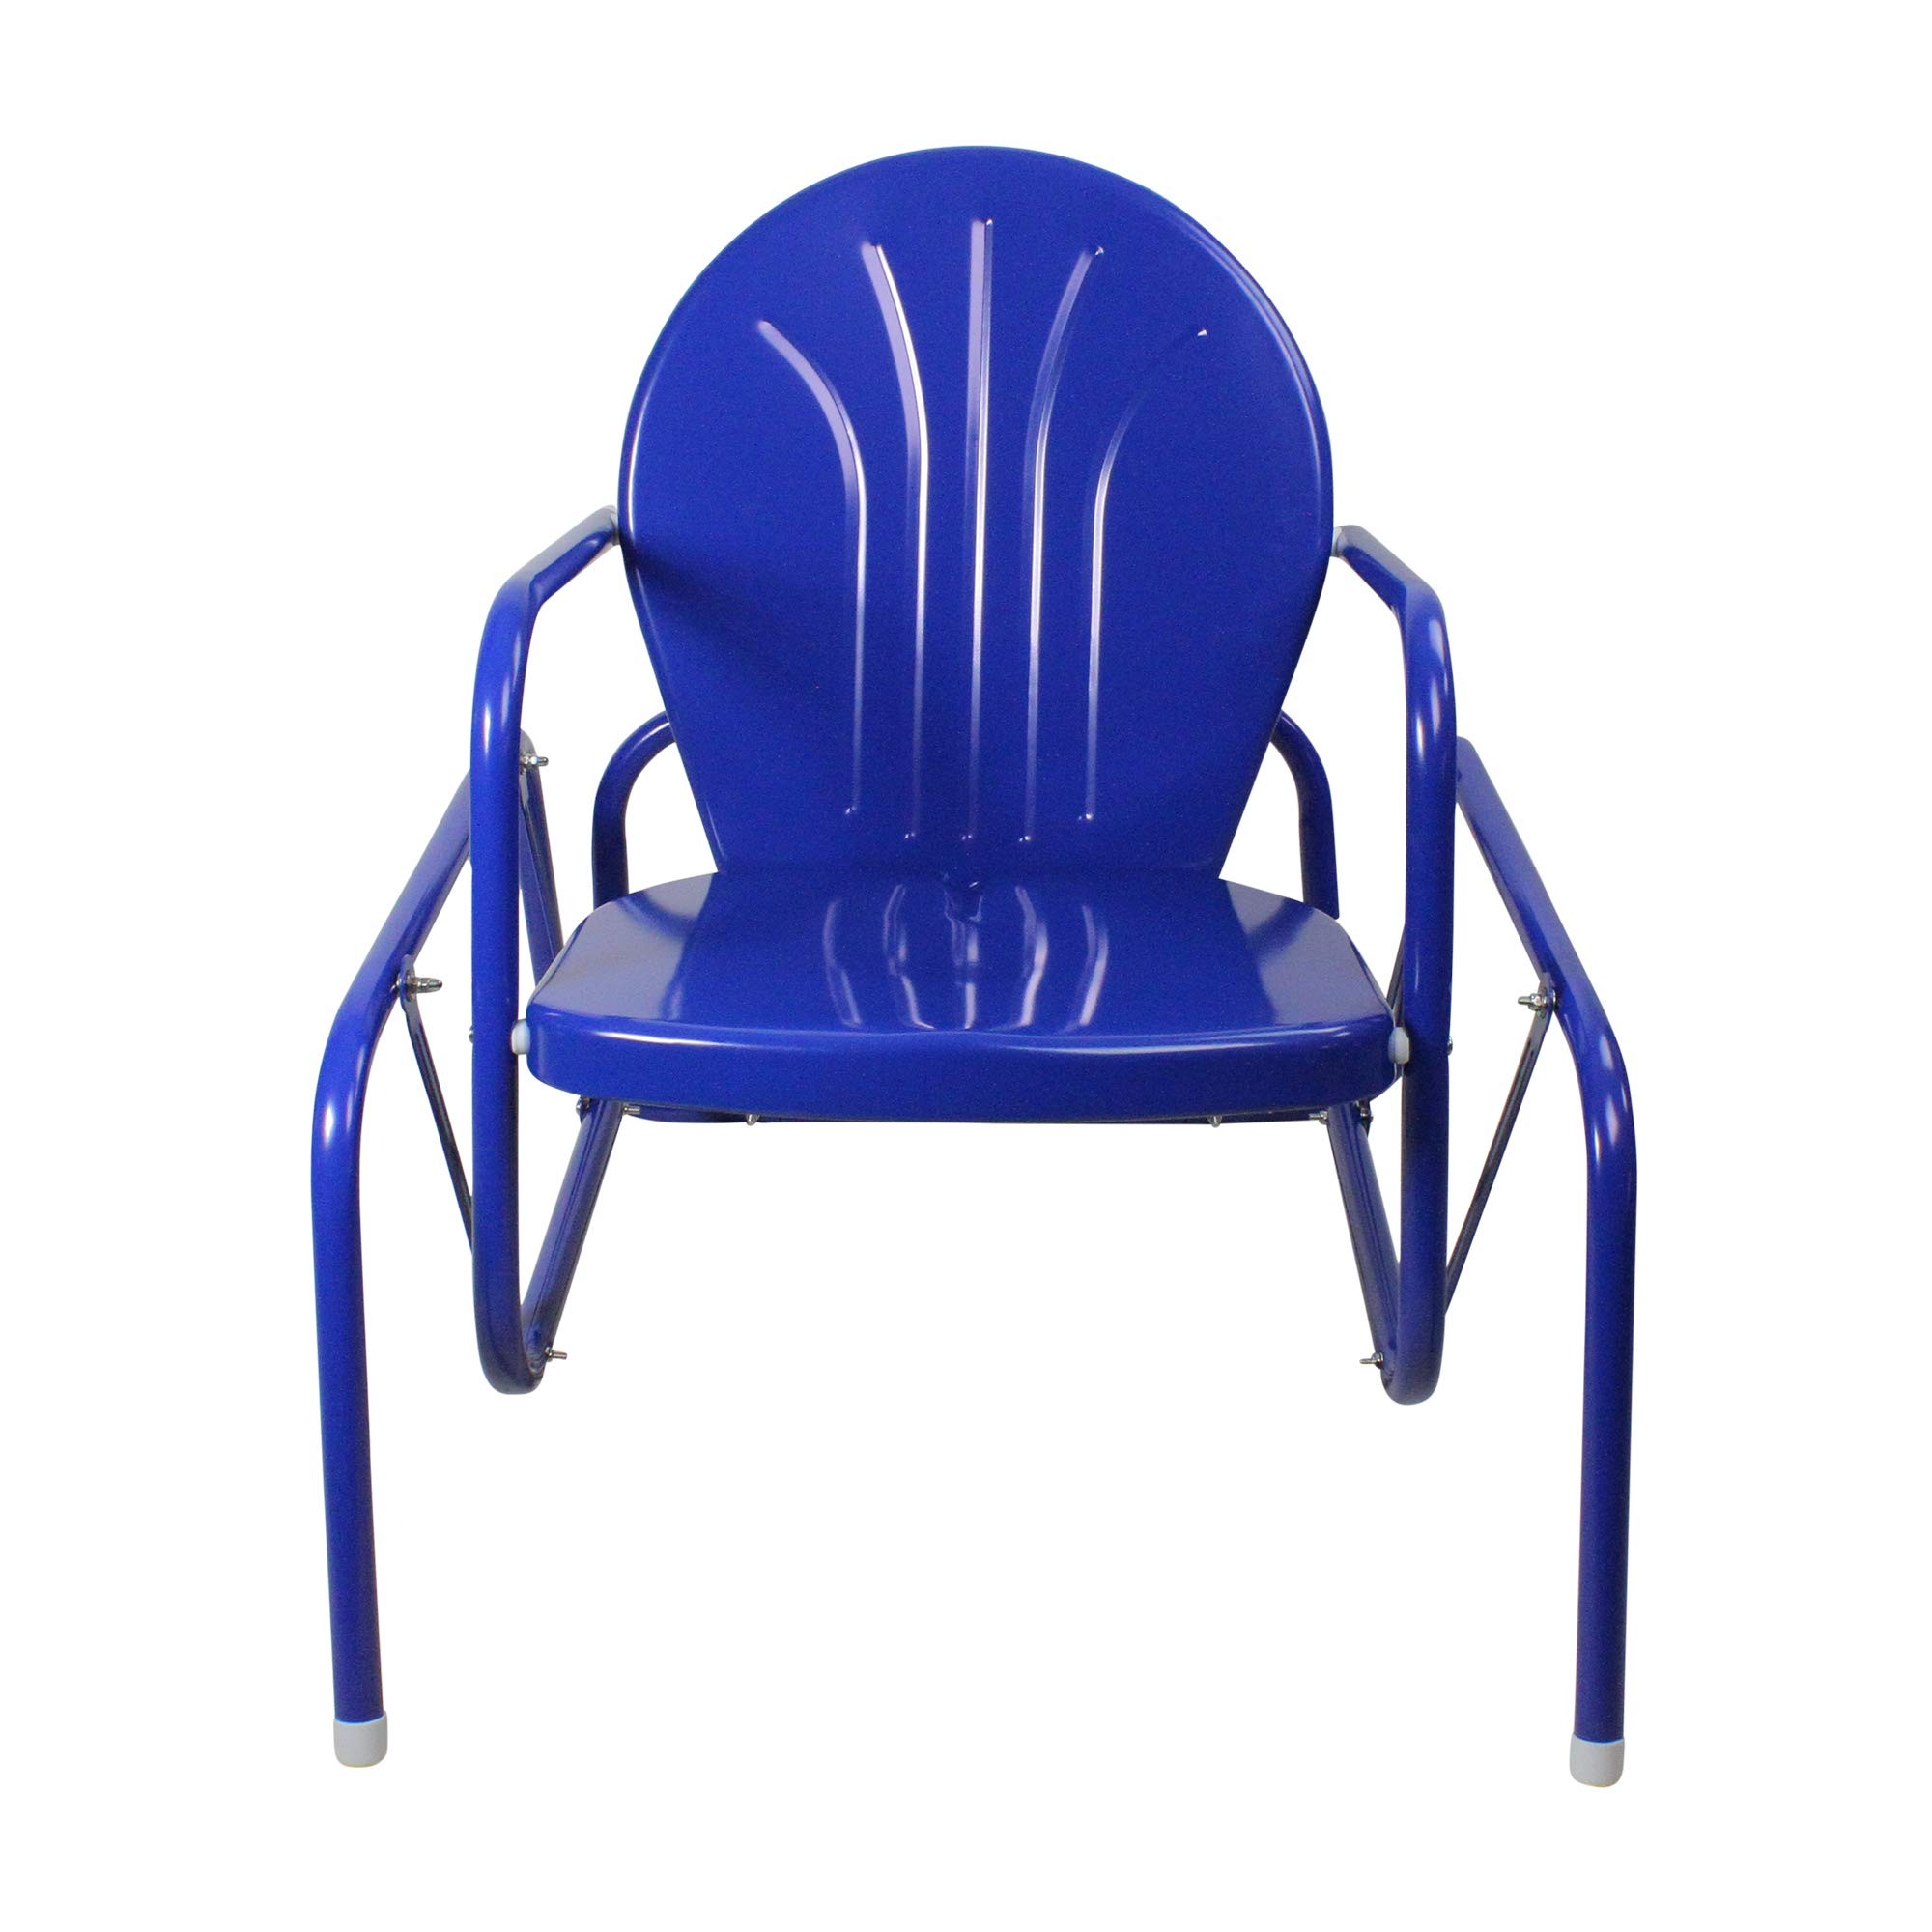 LB International 34'' Electric Blue Retro Metal Tulip Outdoor Single Glider by LB International